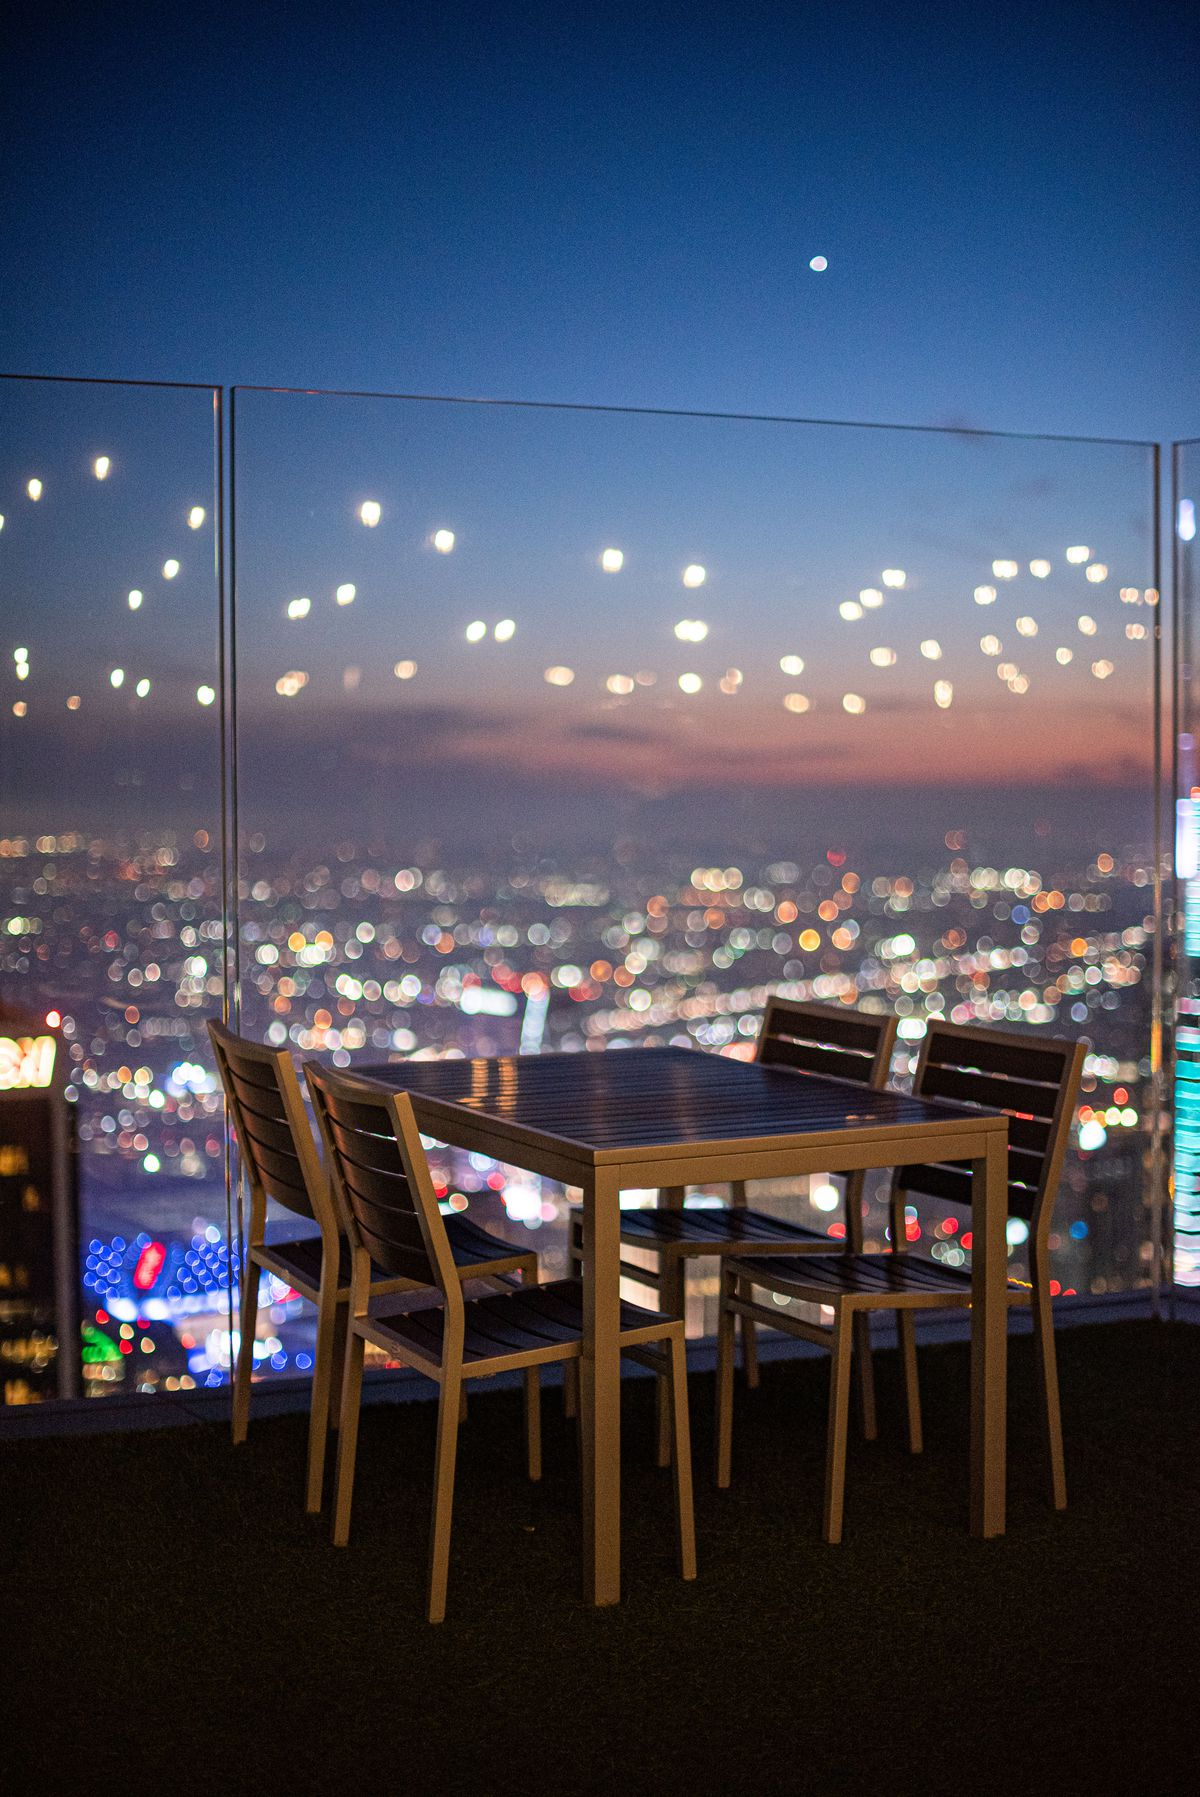 A patio chair on an open air deck overlooking a sparkling city.